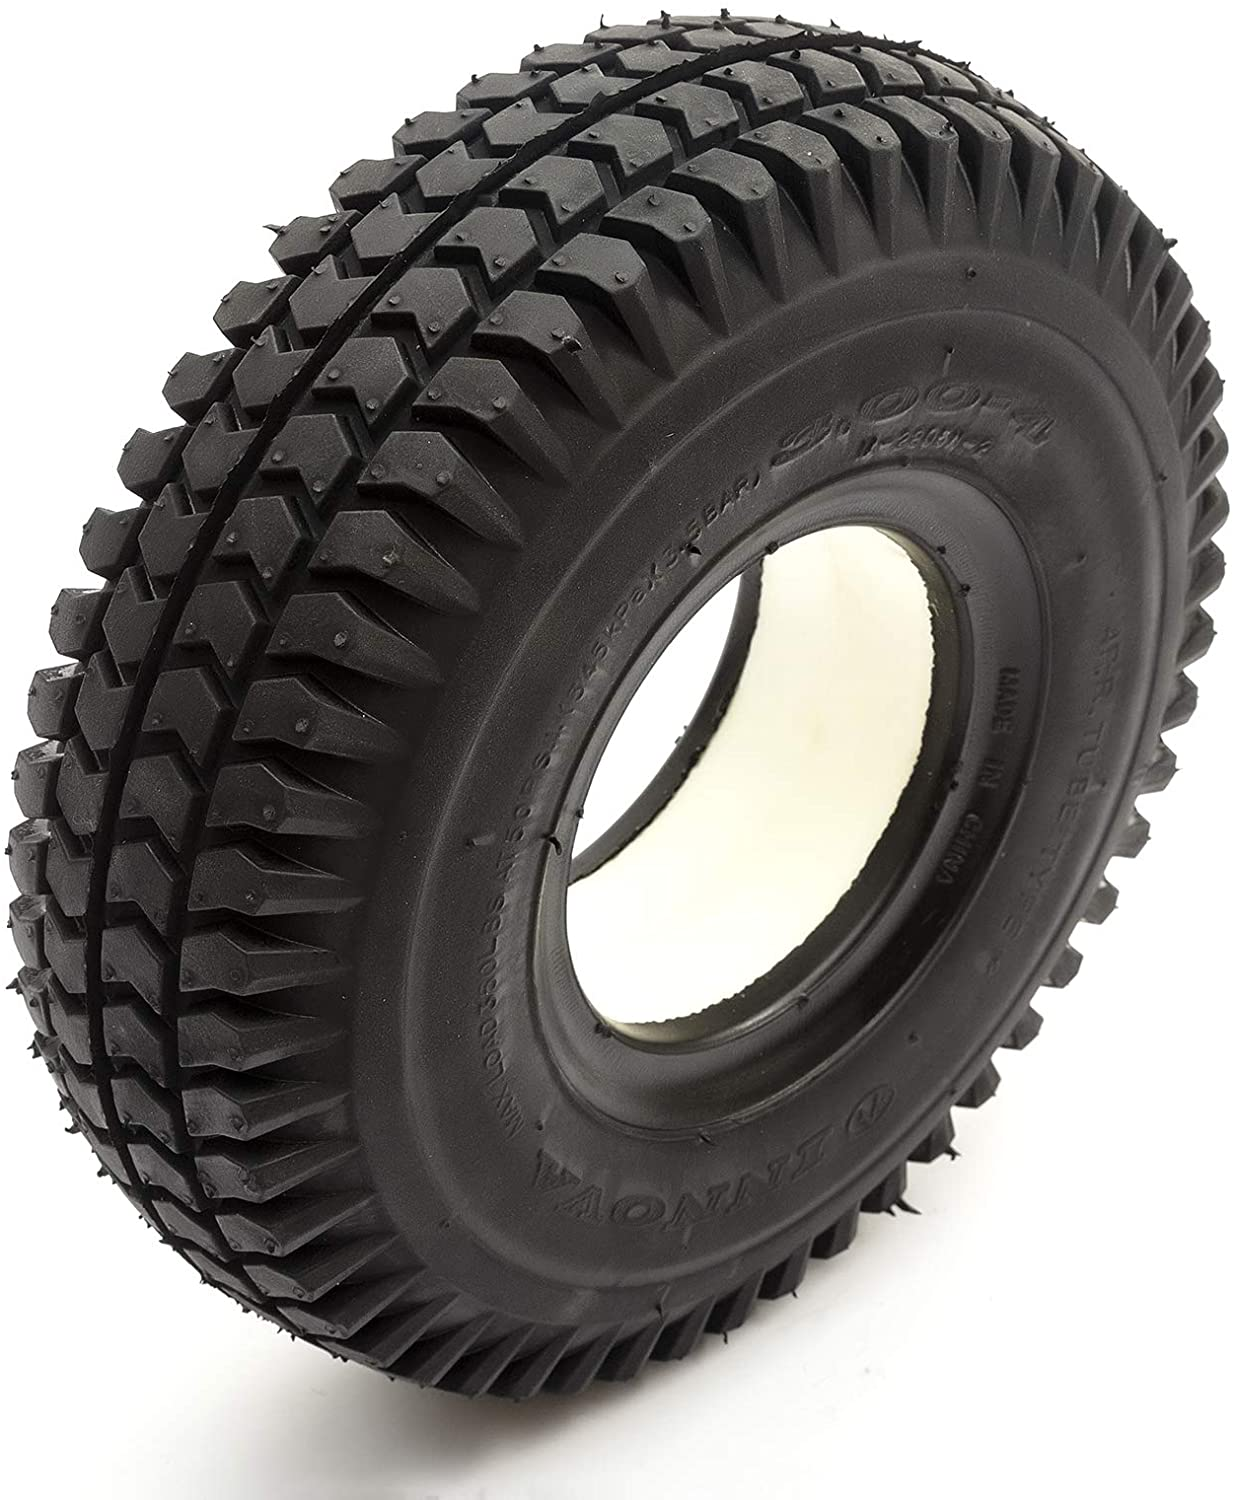 deep tread mobility scooter tire